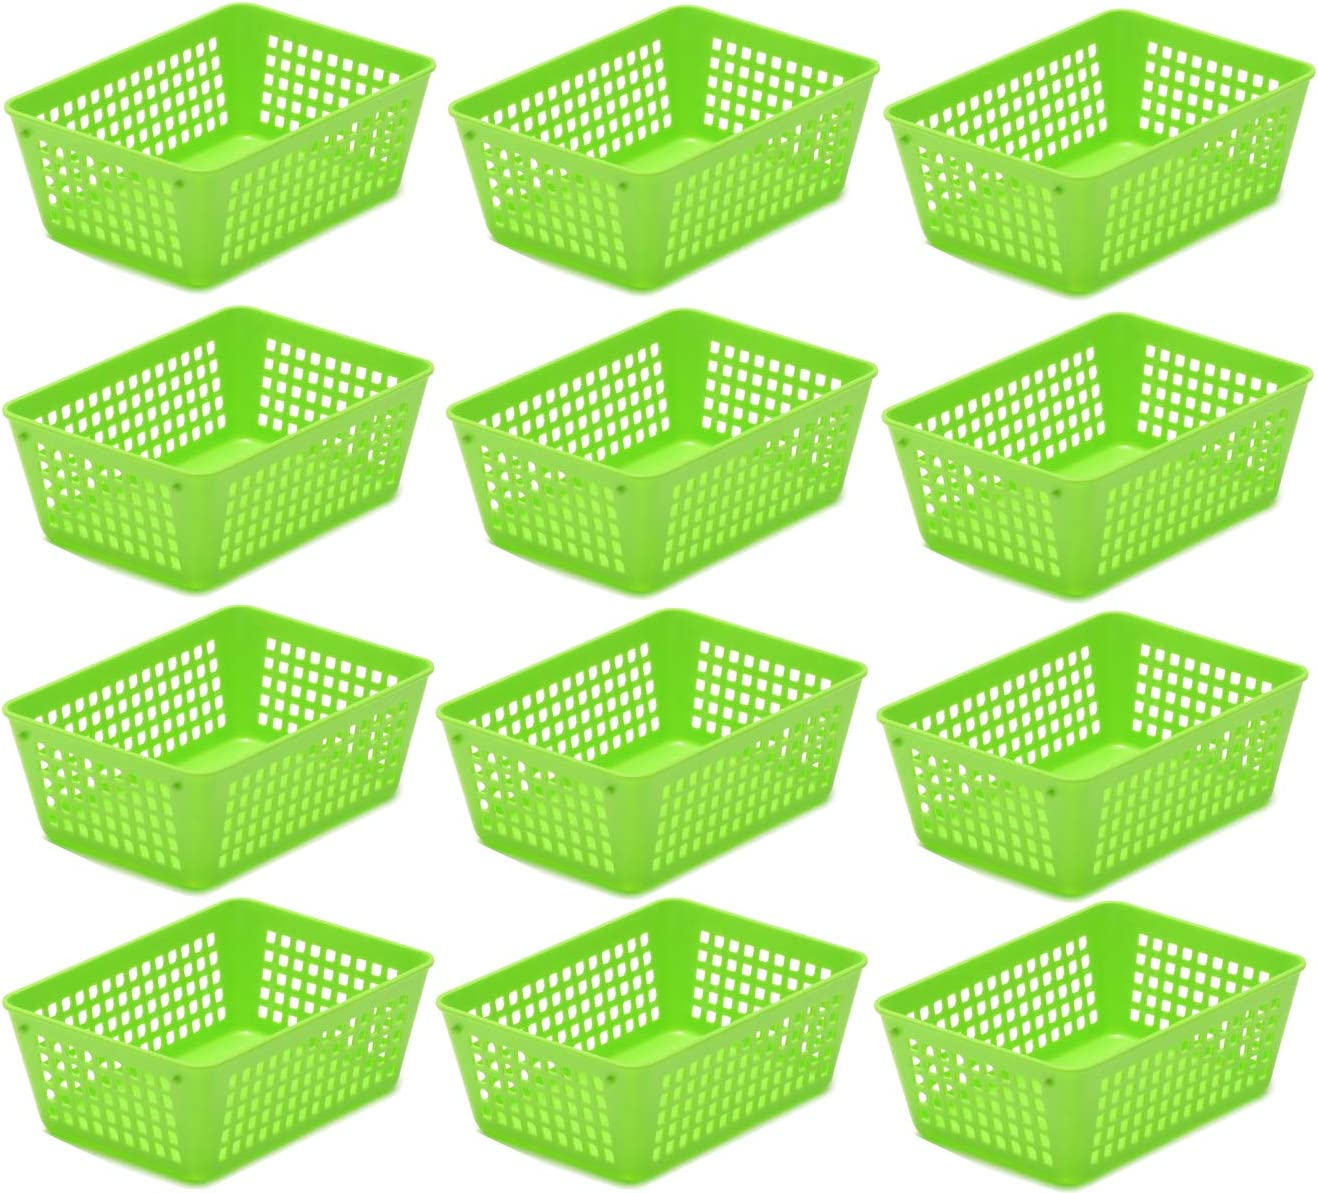 Ybmhome Plastic Storage Supply Basket for Office Drawer, Shelf Desktop, Home Junk Drawers, Kitchen Pantry Or Countertop - Bins Trays for Office Home and School Classrooms 32-1181-12-green (Green, 12)